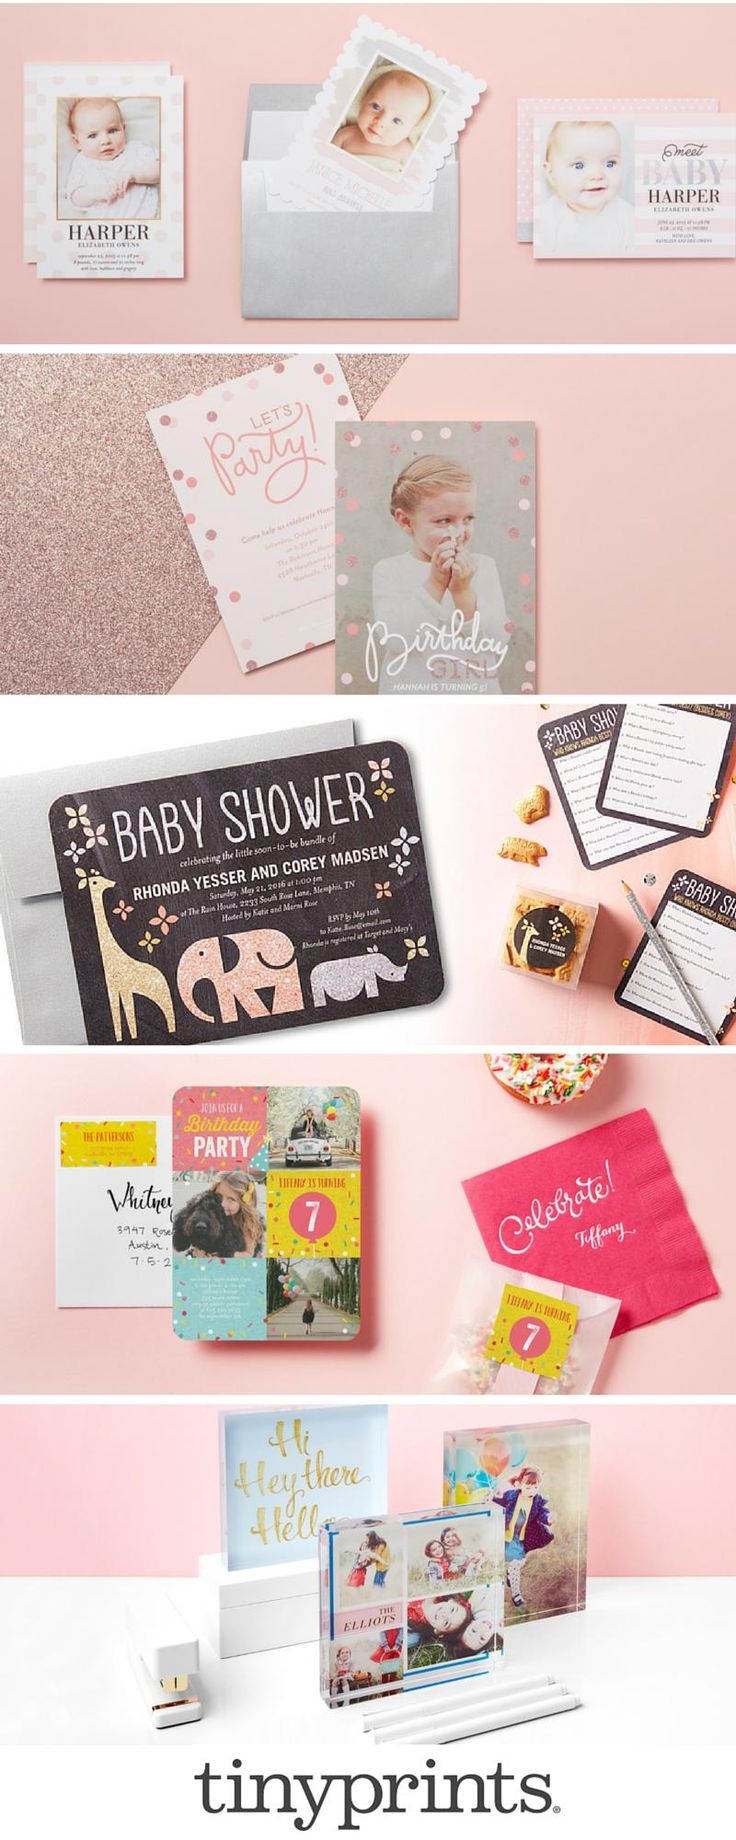 Your baby pink stationery inspiration is here